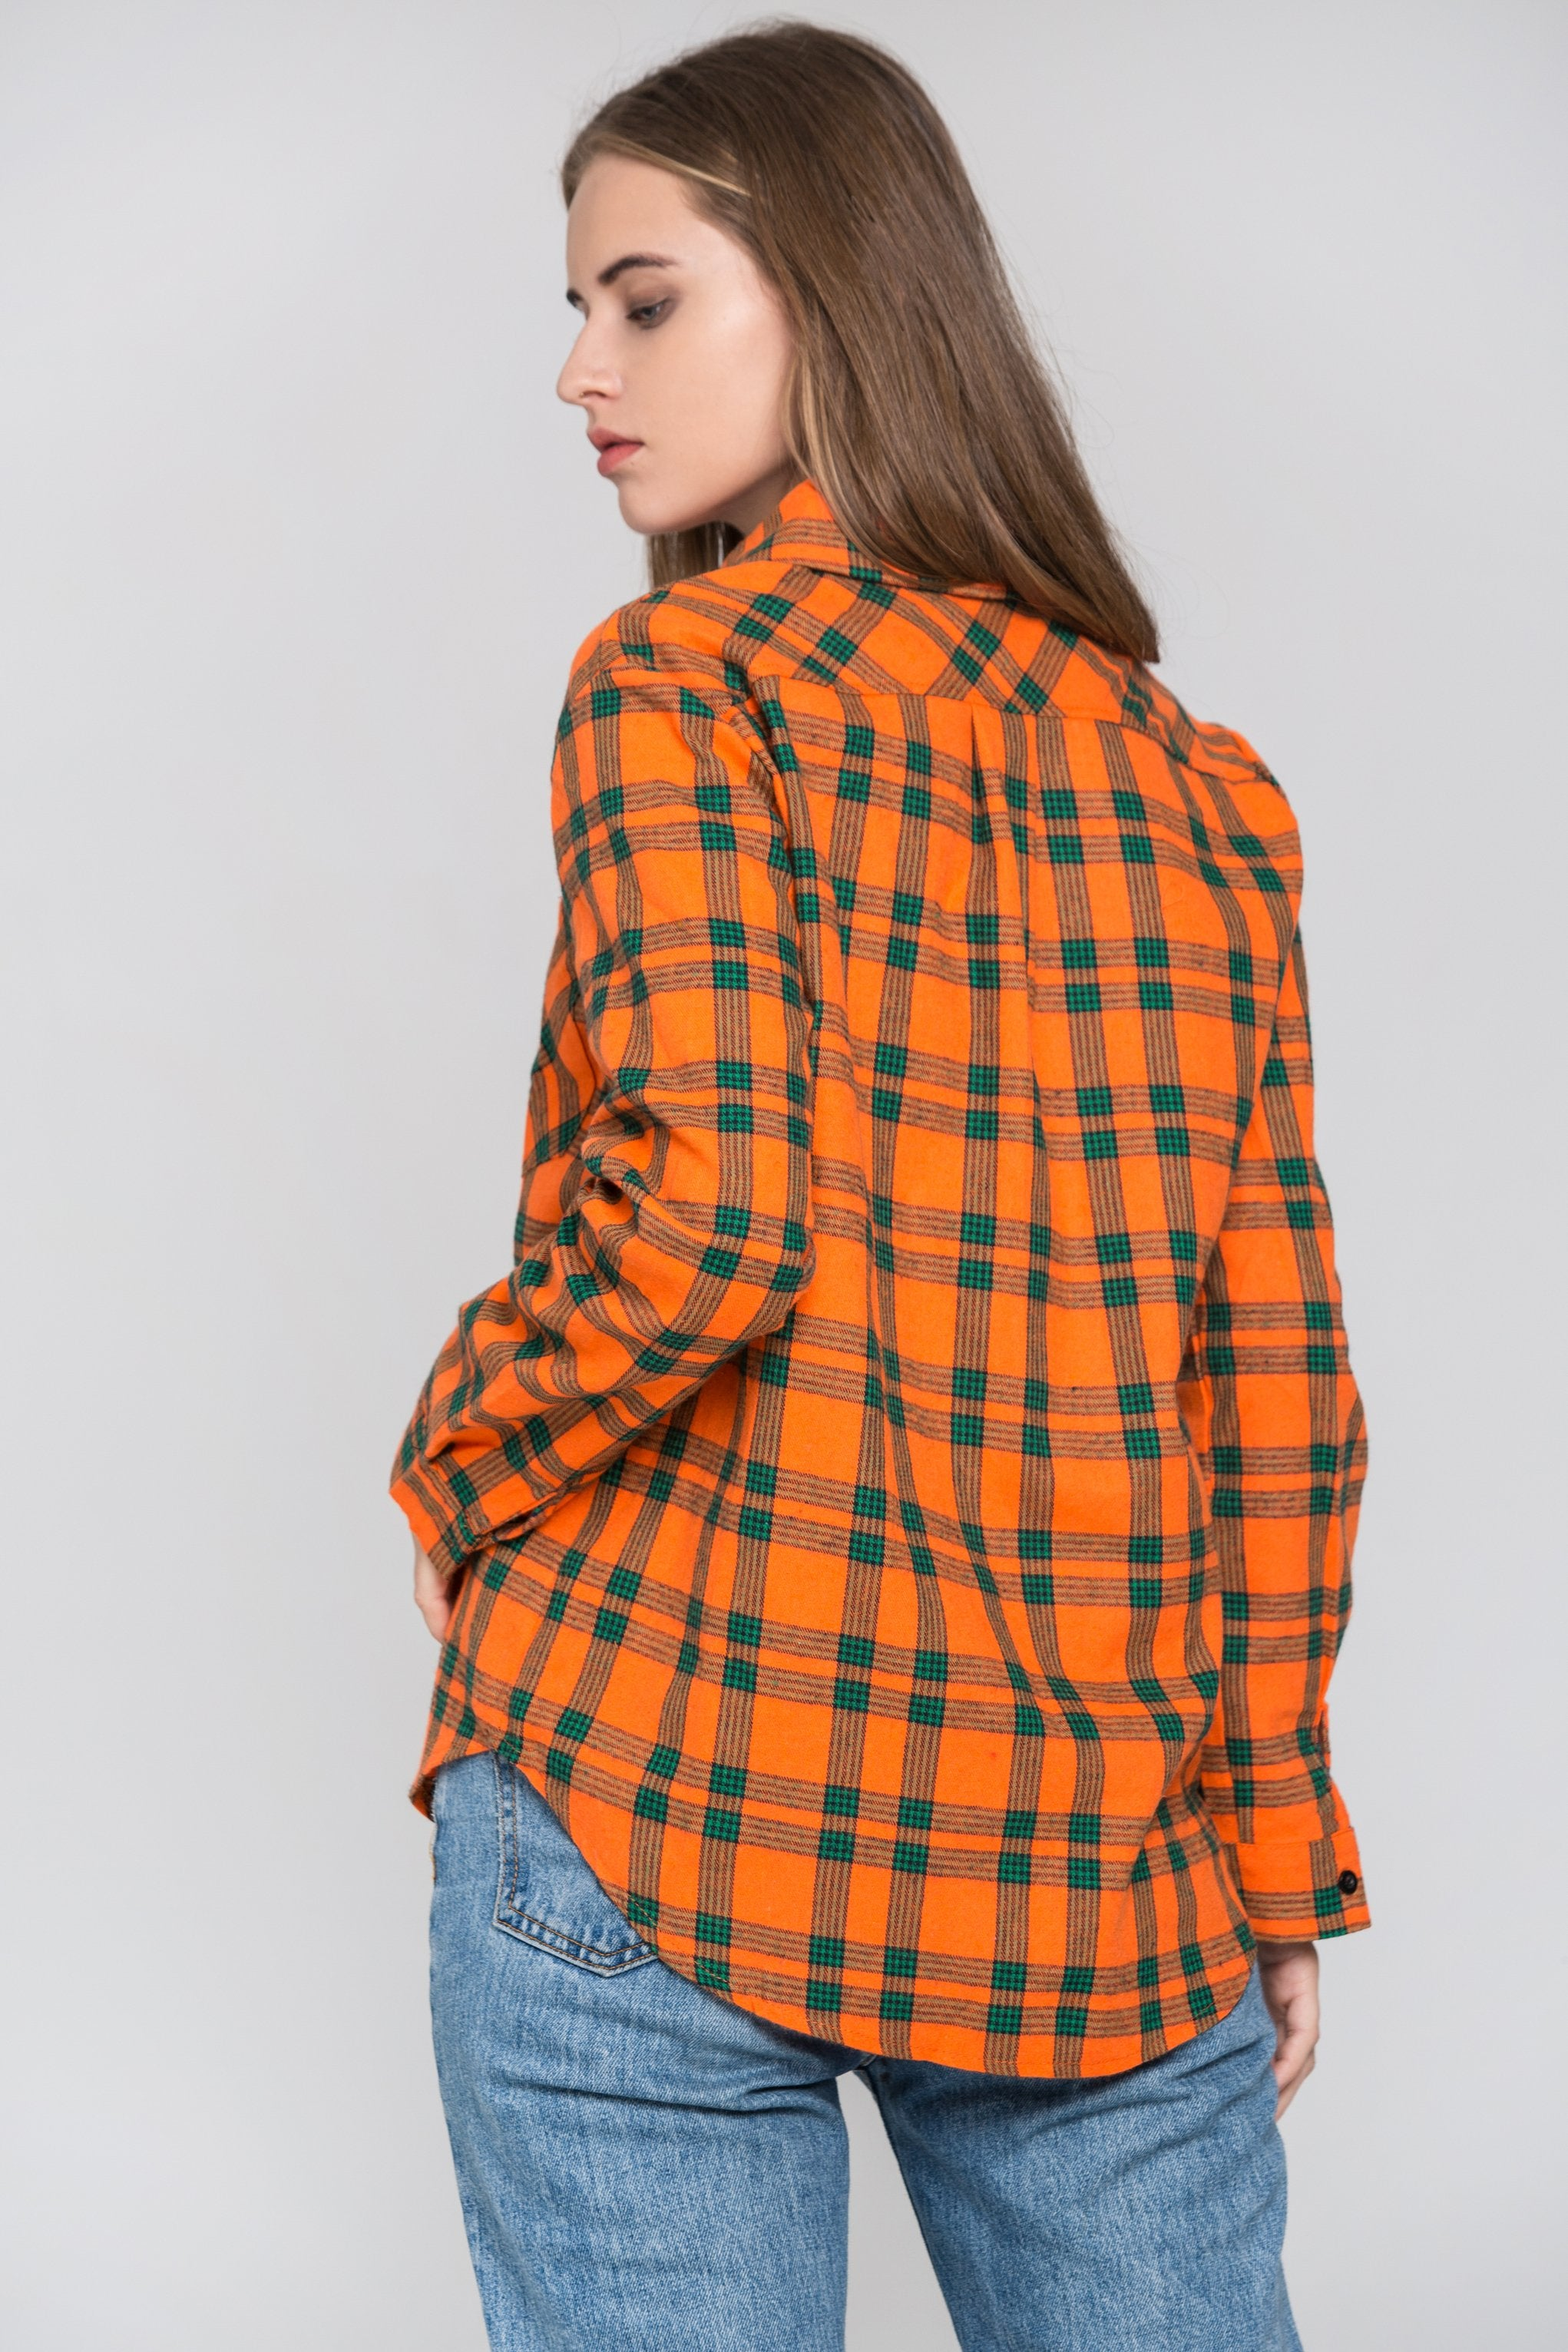 Orange and Green Plaid Shirt Top